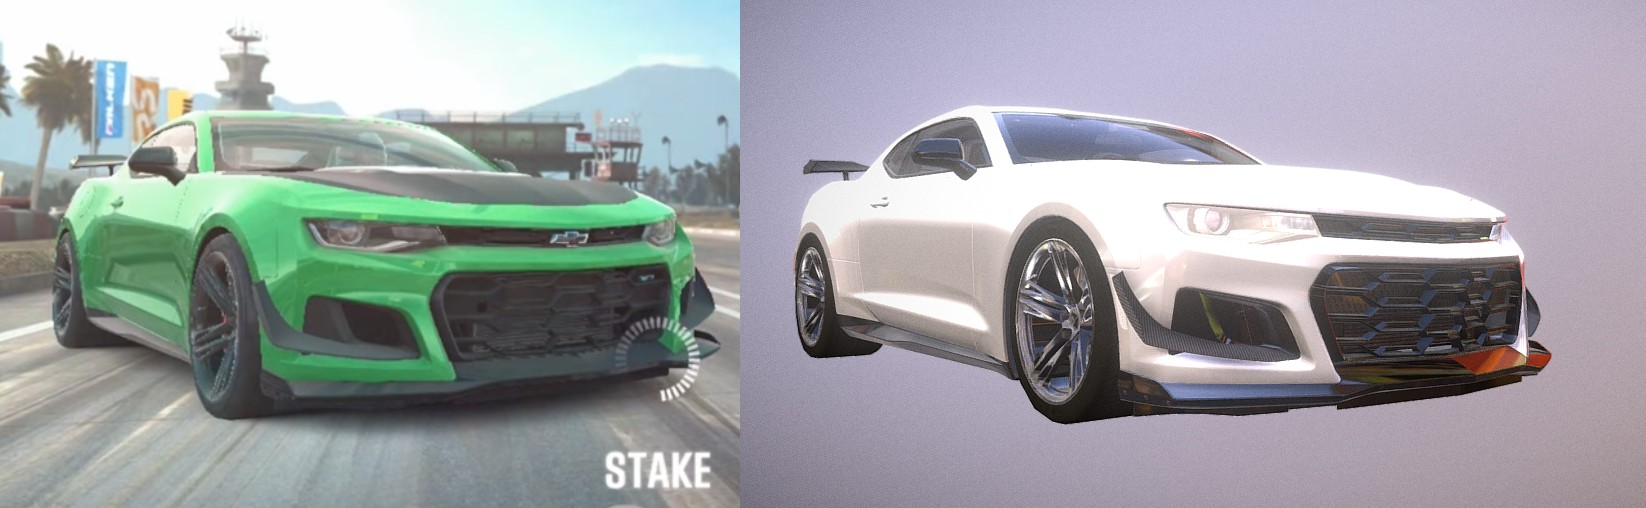 comparison muscle car.jpg